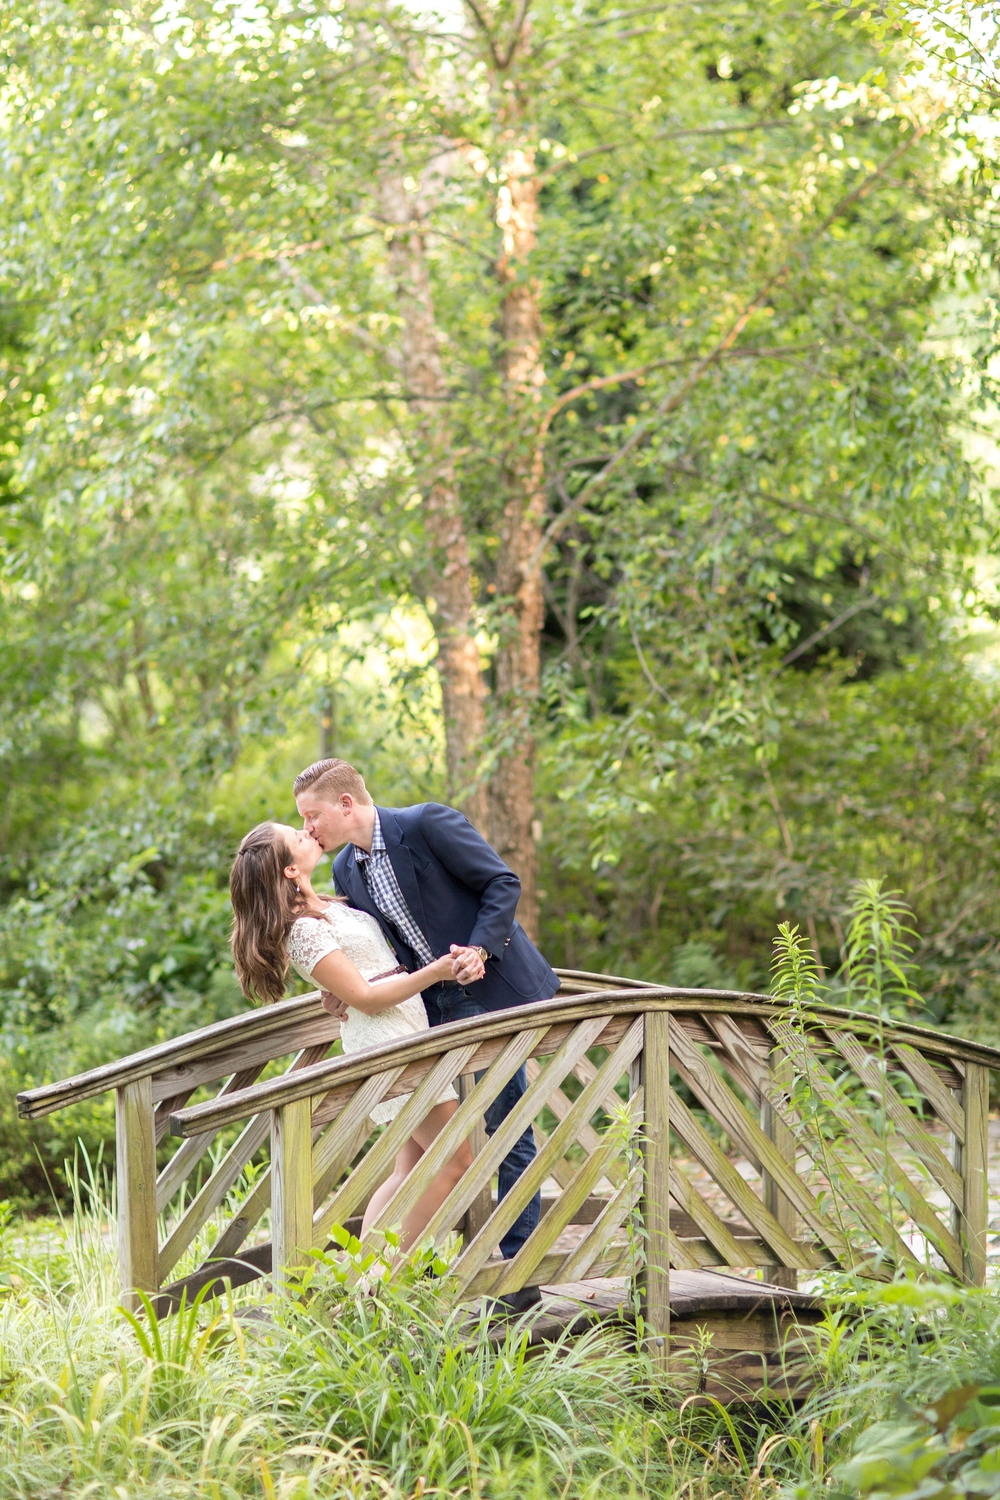 Clare & Nick Engagement-124_anna grace photography brookside gardens maryland engagement photographer photo.jpg